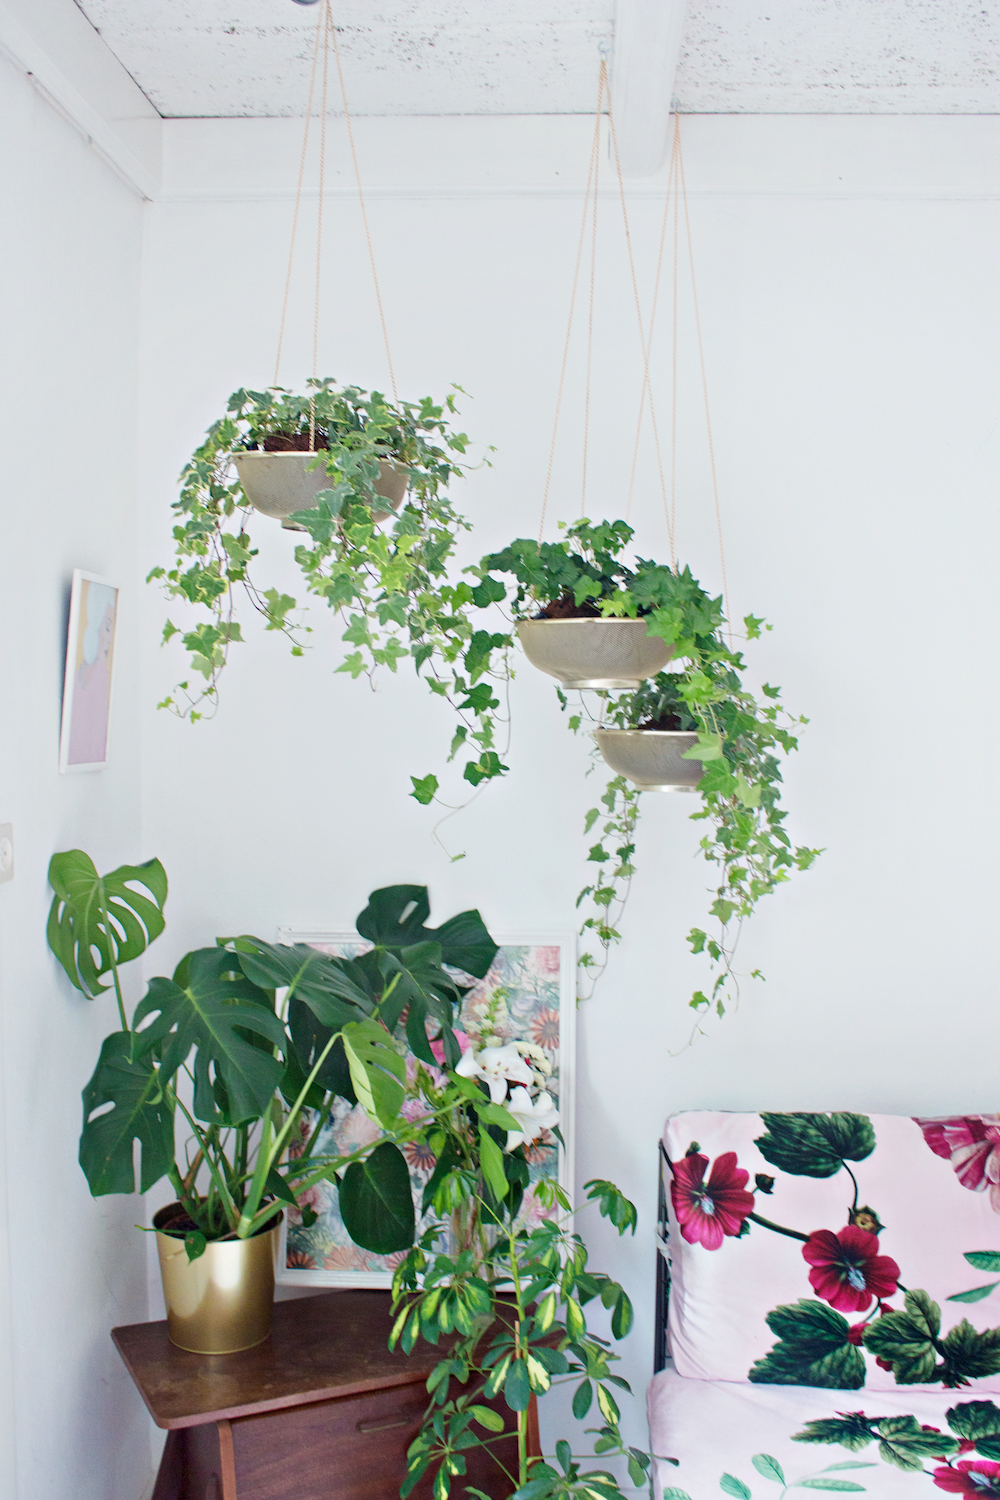 HANGING PLANT DIY | From Sifter to Planter